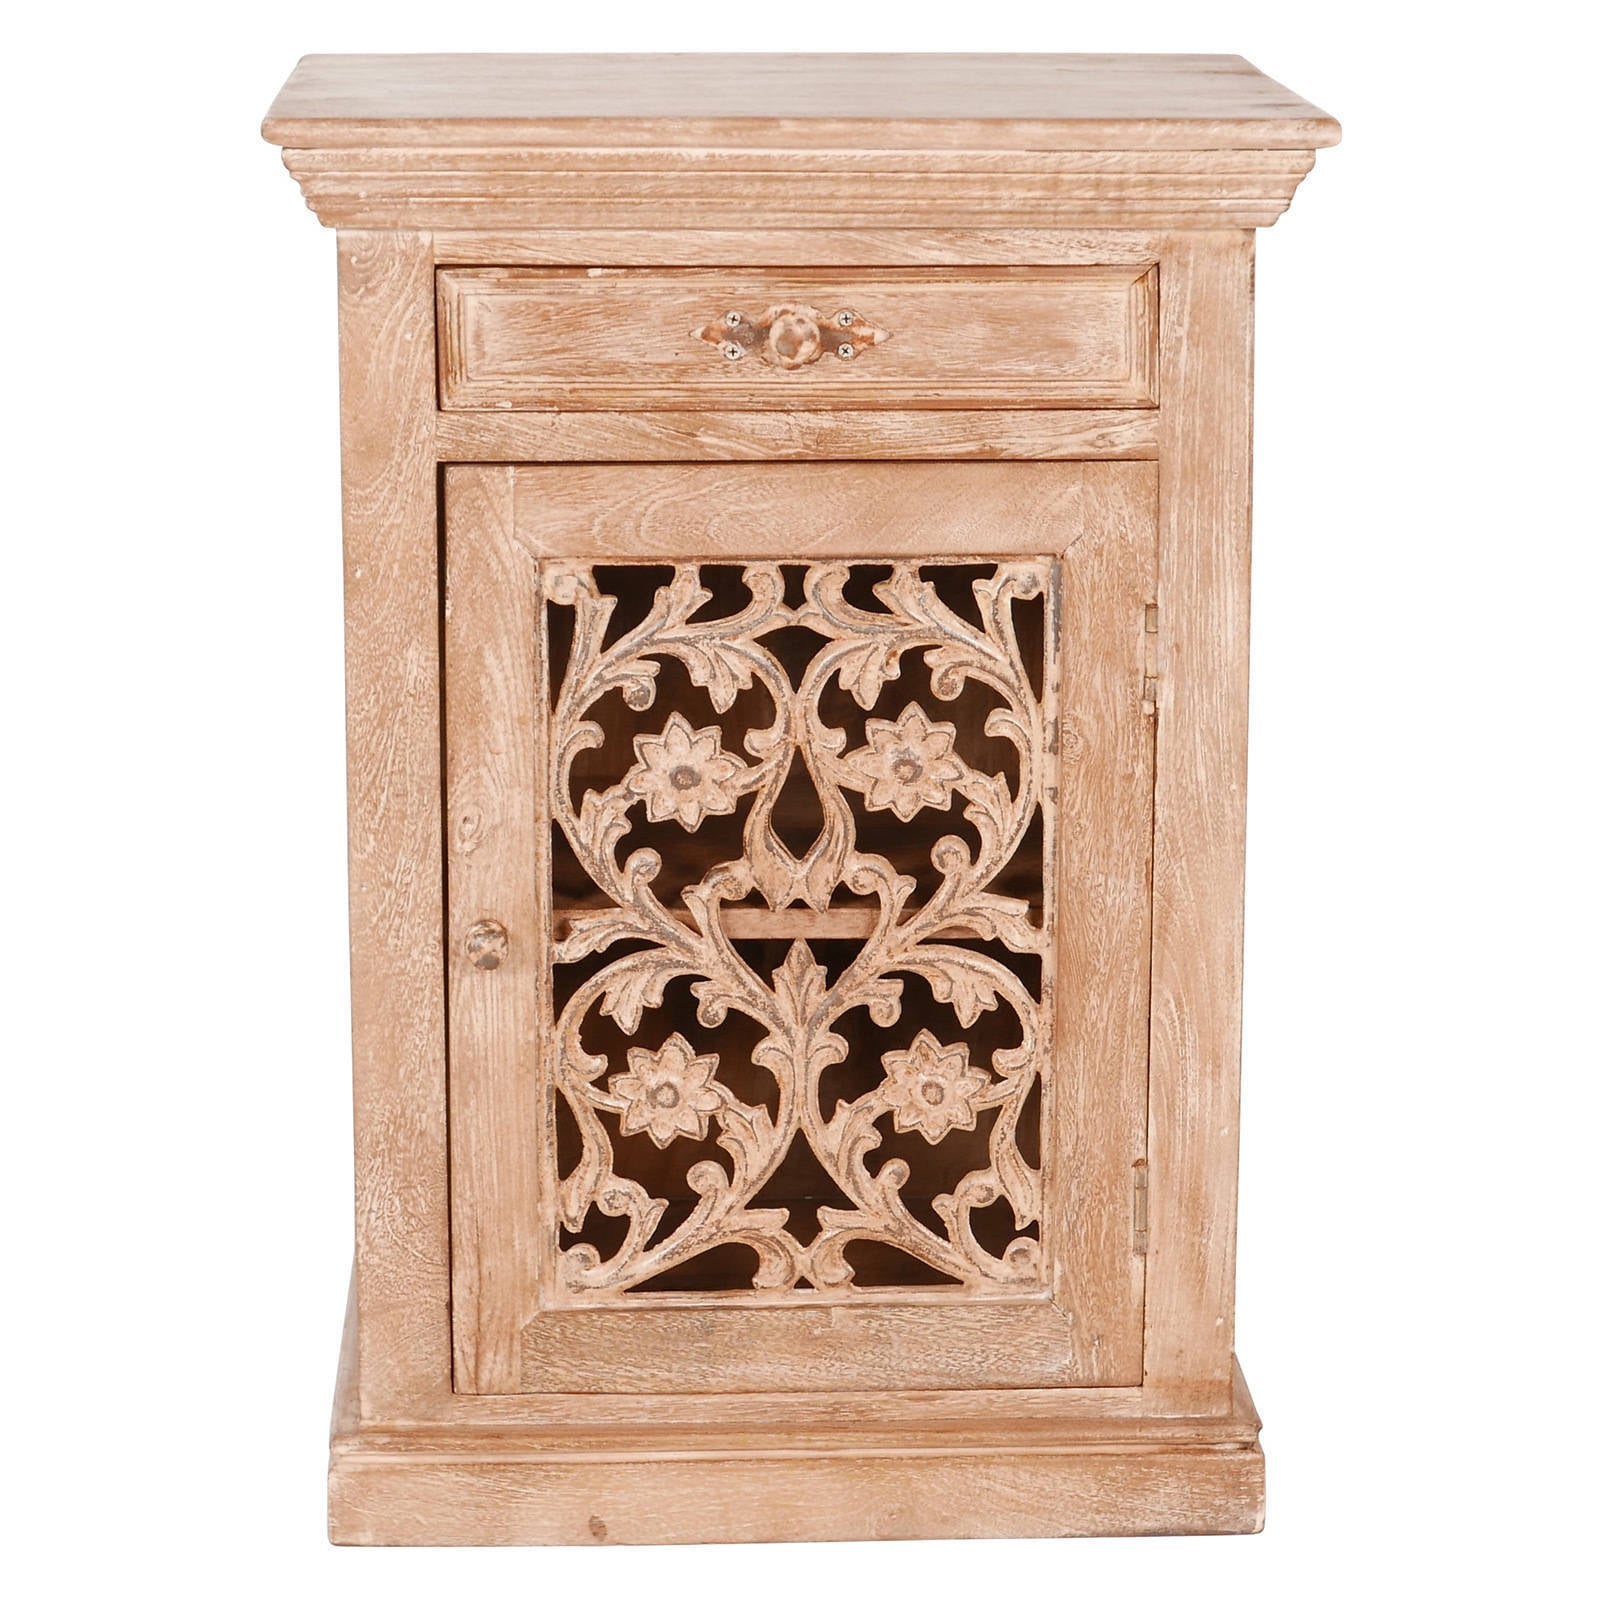 handmade magnolia rustic reclaimed wood and metal nightstand india